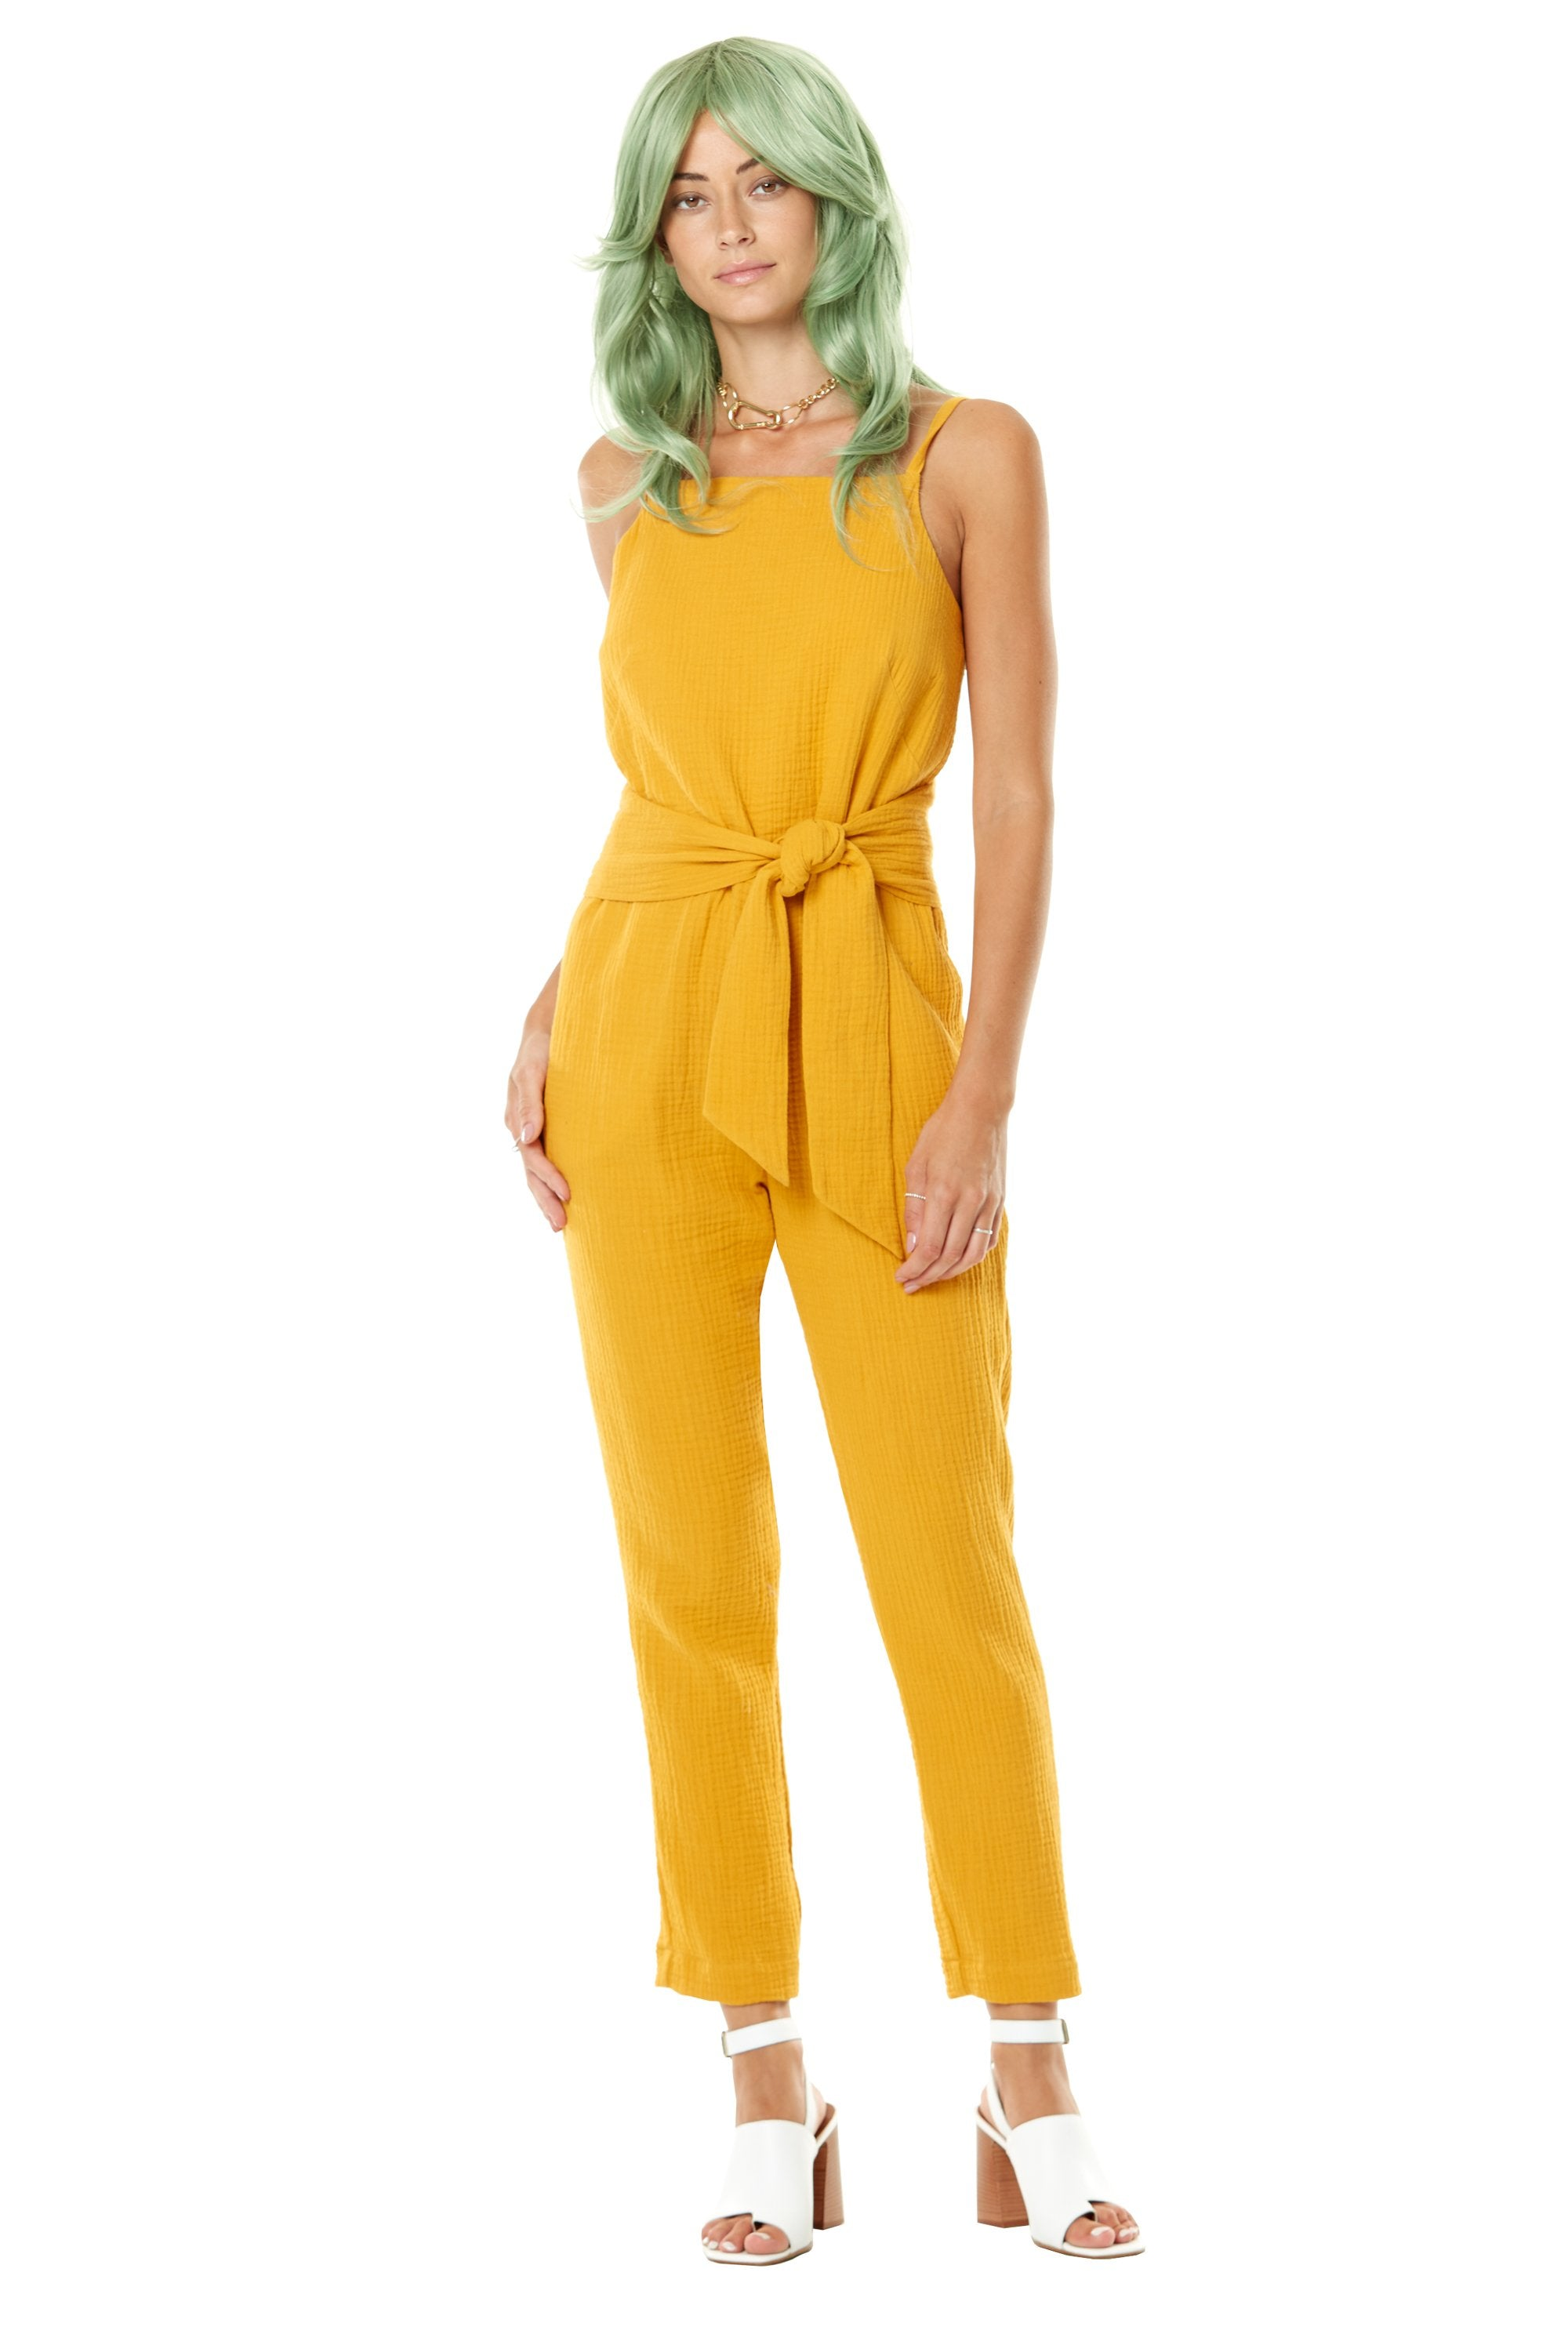 Polly Waffles Jumpsuit by Annie 50, Yellow, semi-fitted, adjustable spaghetti straps, wide belt, pockets, cotton, sizes XS to L, made in Quebec